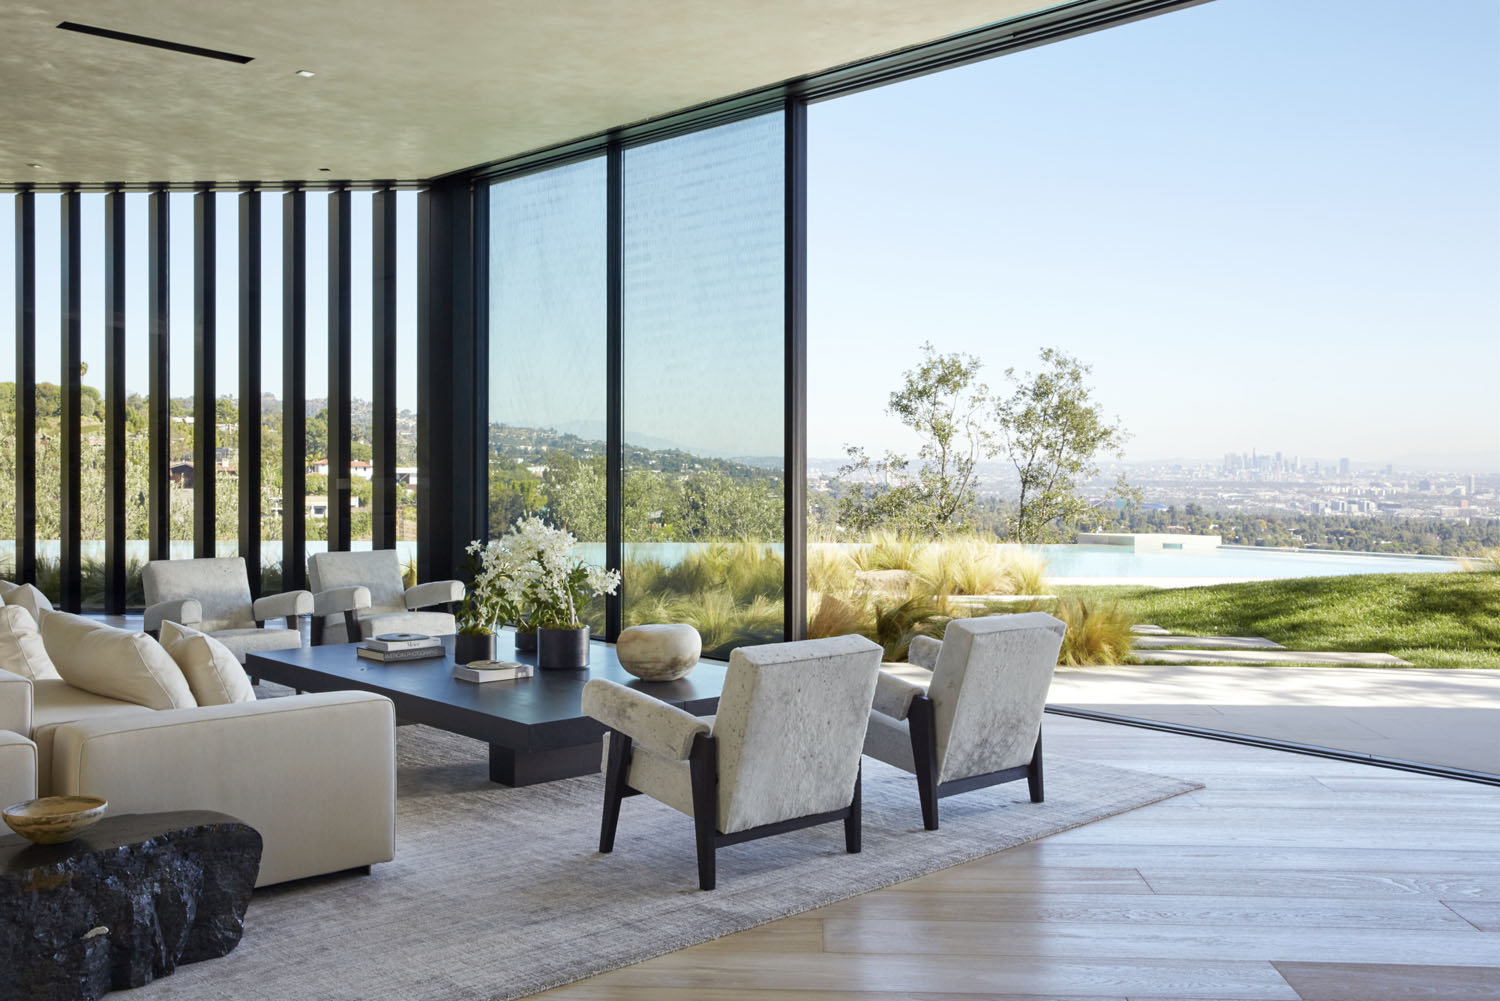 Los Angeles Home with City View